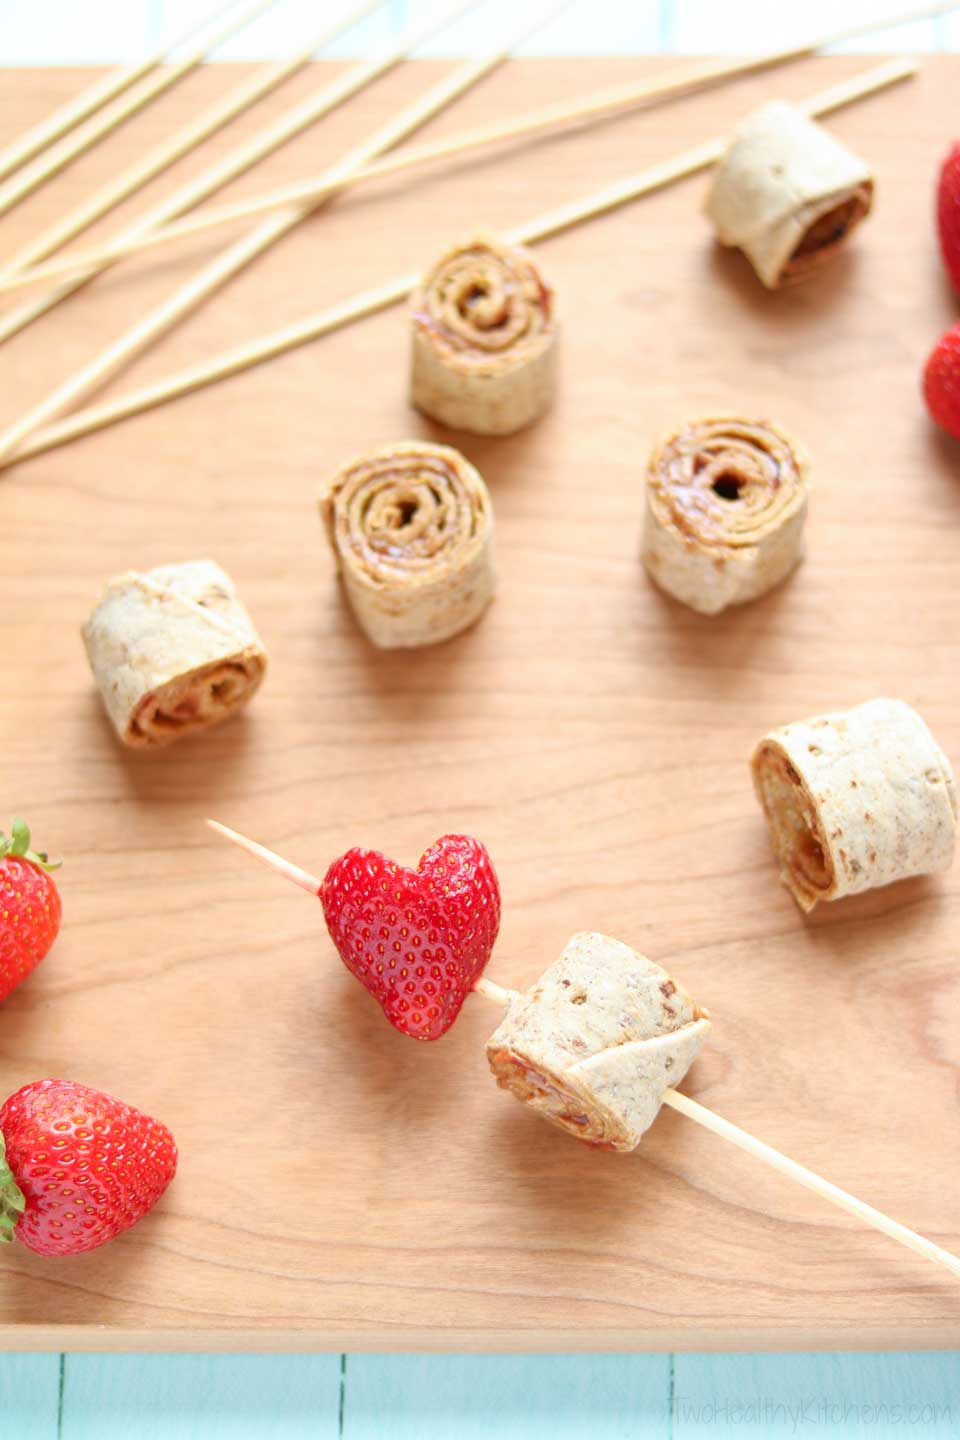 What's not to love about this lunchbox idea? Pinwheels make sandwich wraps more bite-sized and fun … and threading those pinwheels onto skewers to make cute kabobs just takes the fun to the next level! Your kids will love these! And you'll love that they're quick and easy, and also really nutritious!